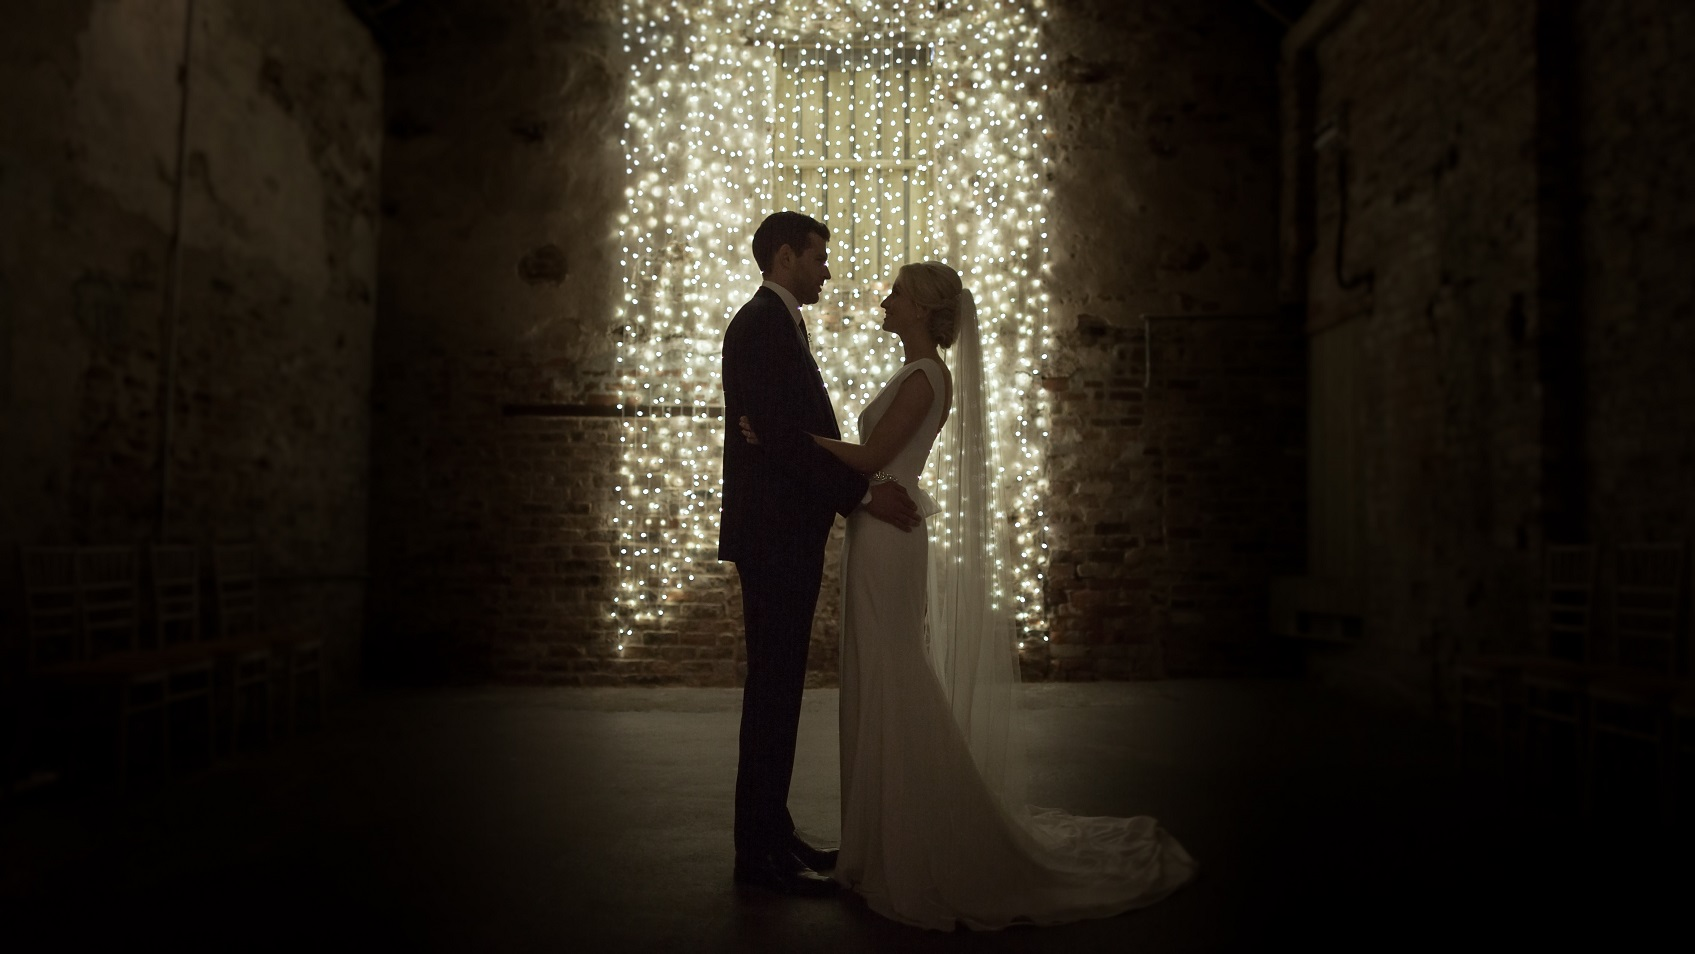 Fairylights Galore at The Normans Photo by www.lukebellphotography.co.uk